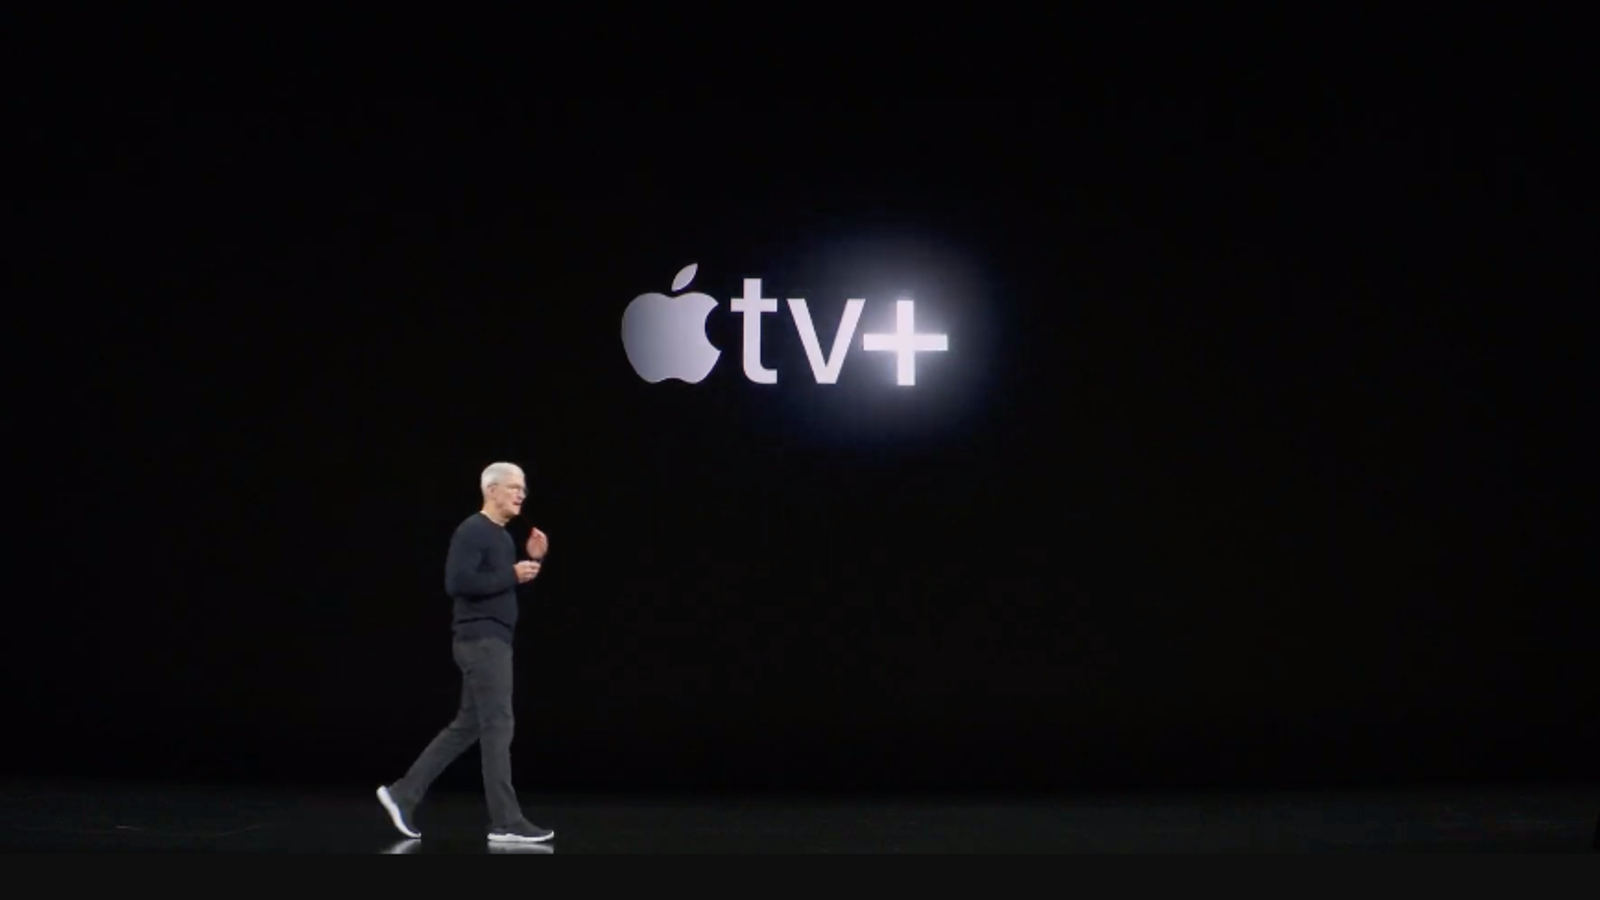 Apple Announces the Price and Date for Its Apple TV+ Streaming Service